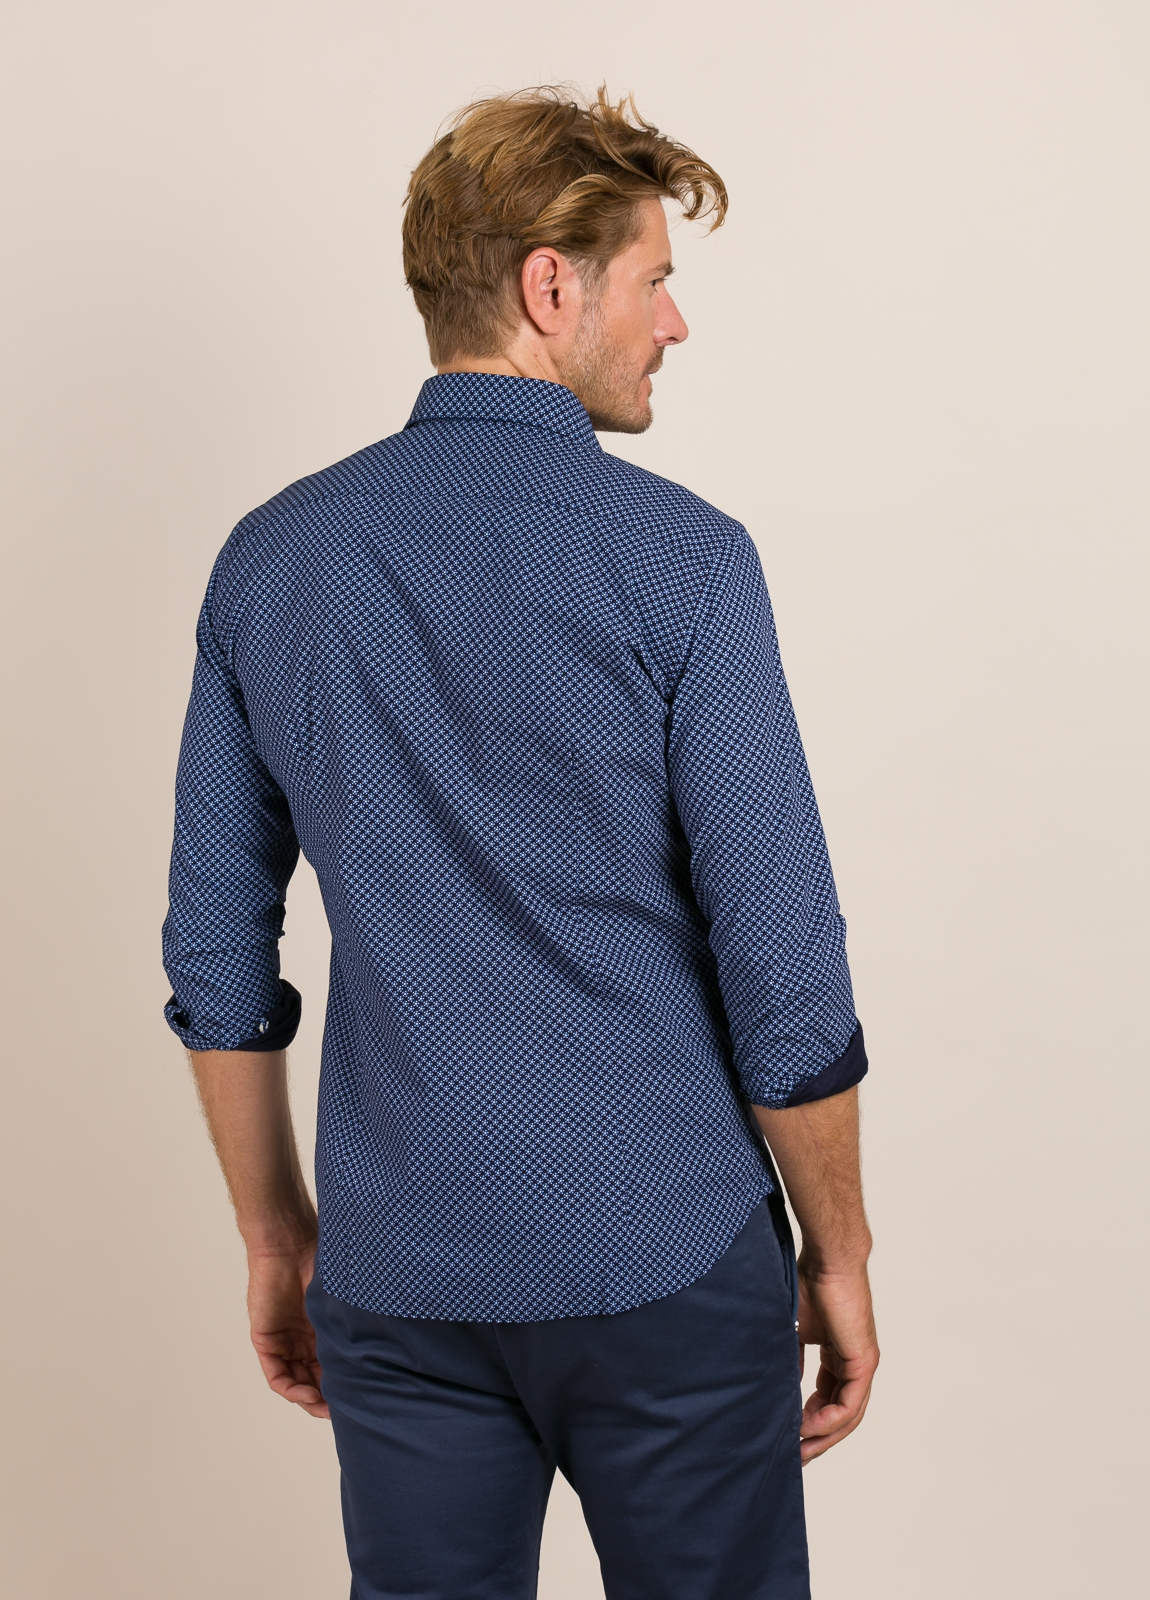 Camisa Casual Wear FUREST COLECCIÓN slim fit. - Ítem2